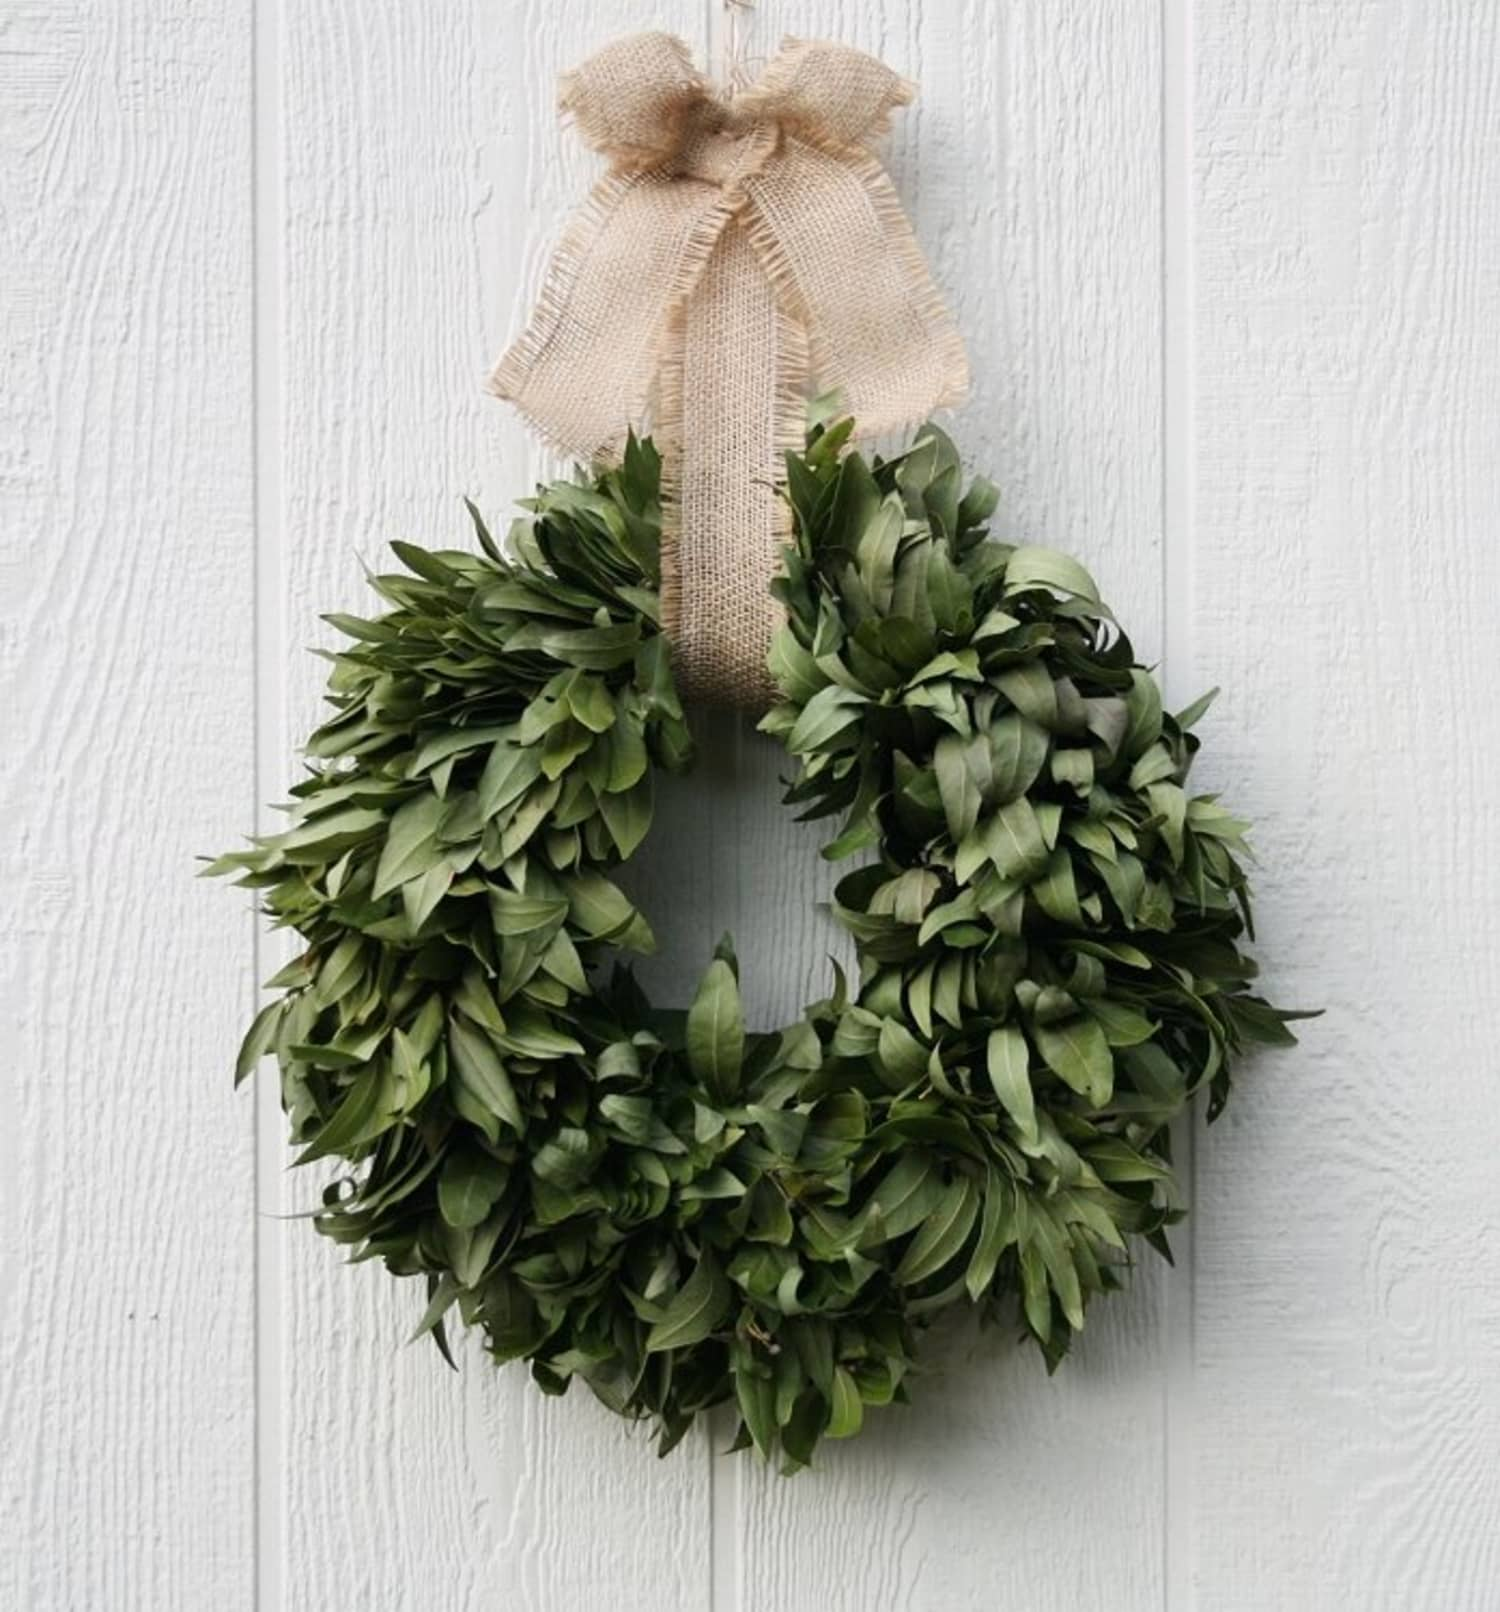 Hang A Bay Wreath For Christmas And Enjoy It All Year Long Kitchn